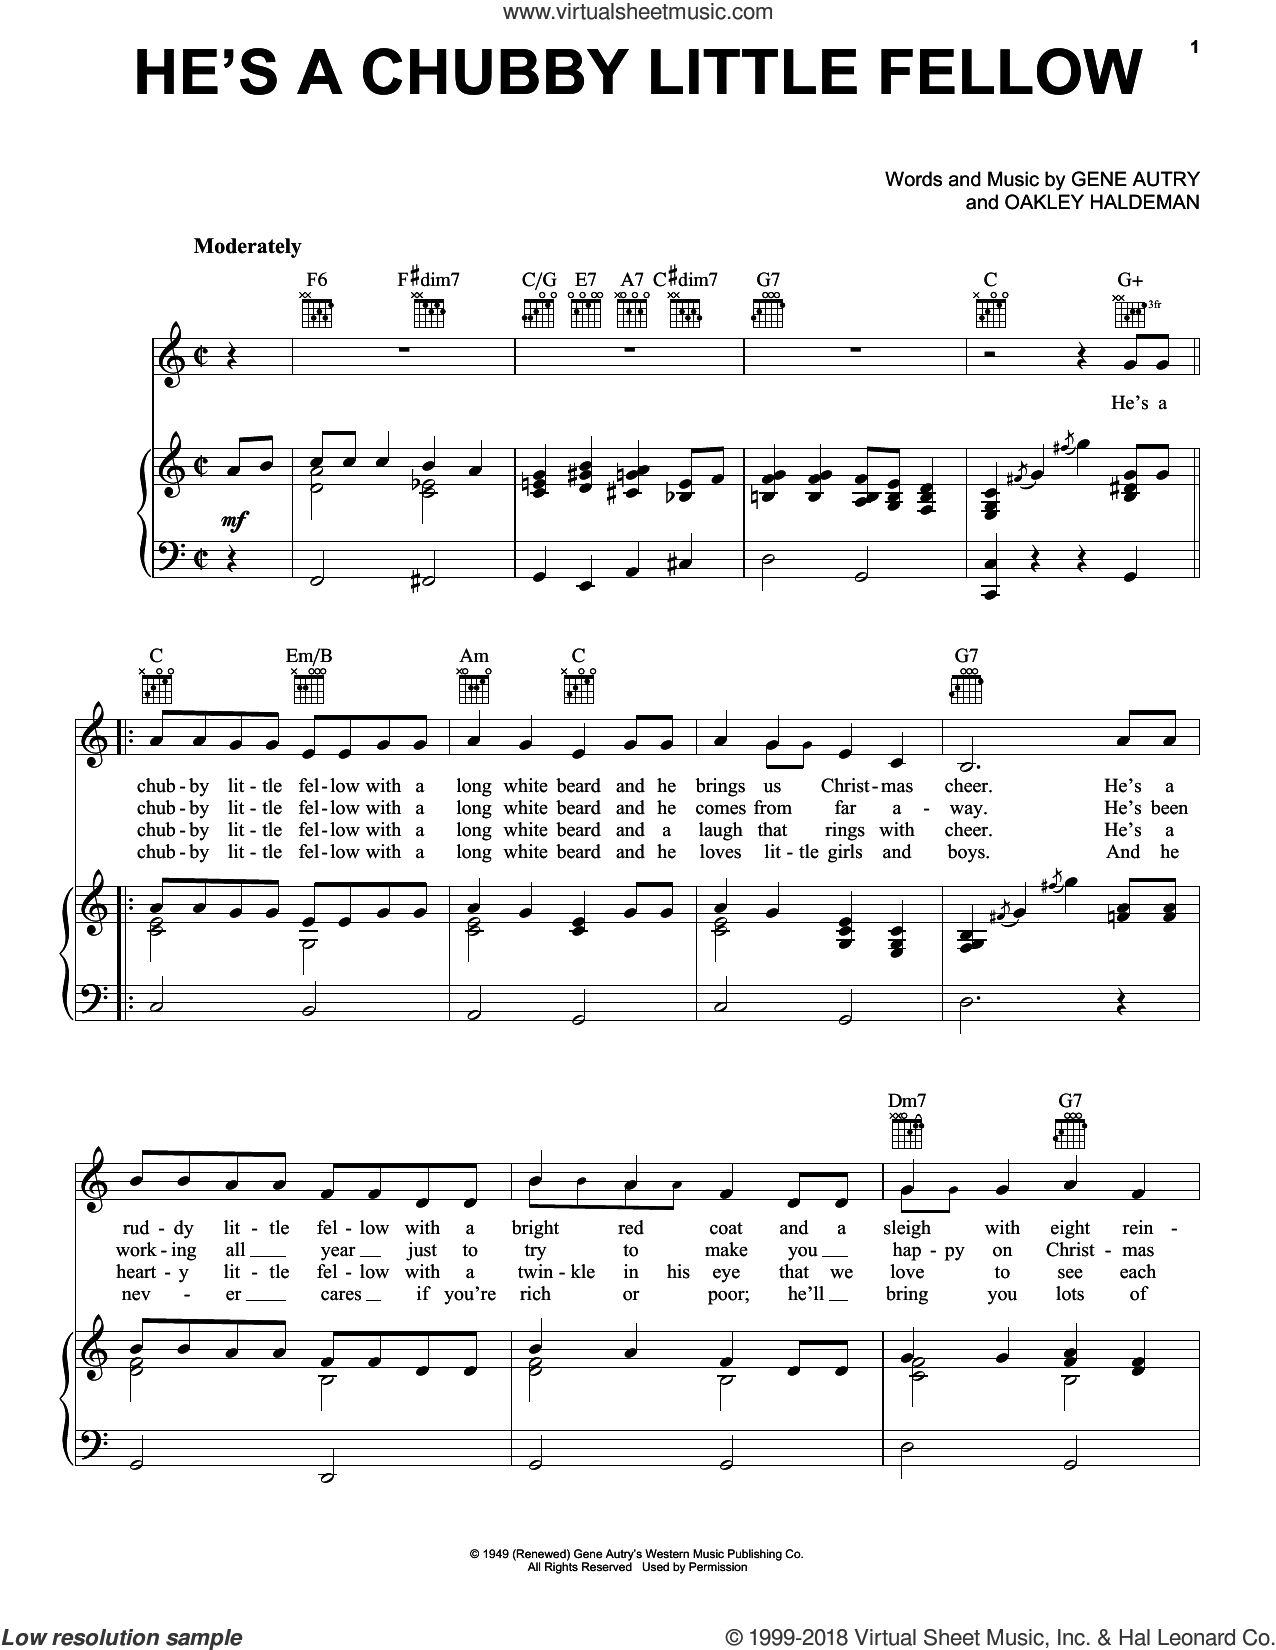 He's A Chubby Little Fellow sheet music for voice, piano or guitar by Gene Autry. Score Image Preview.